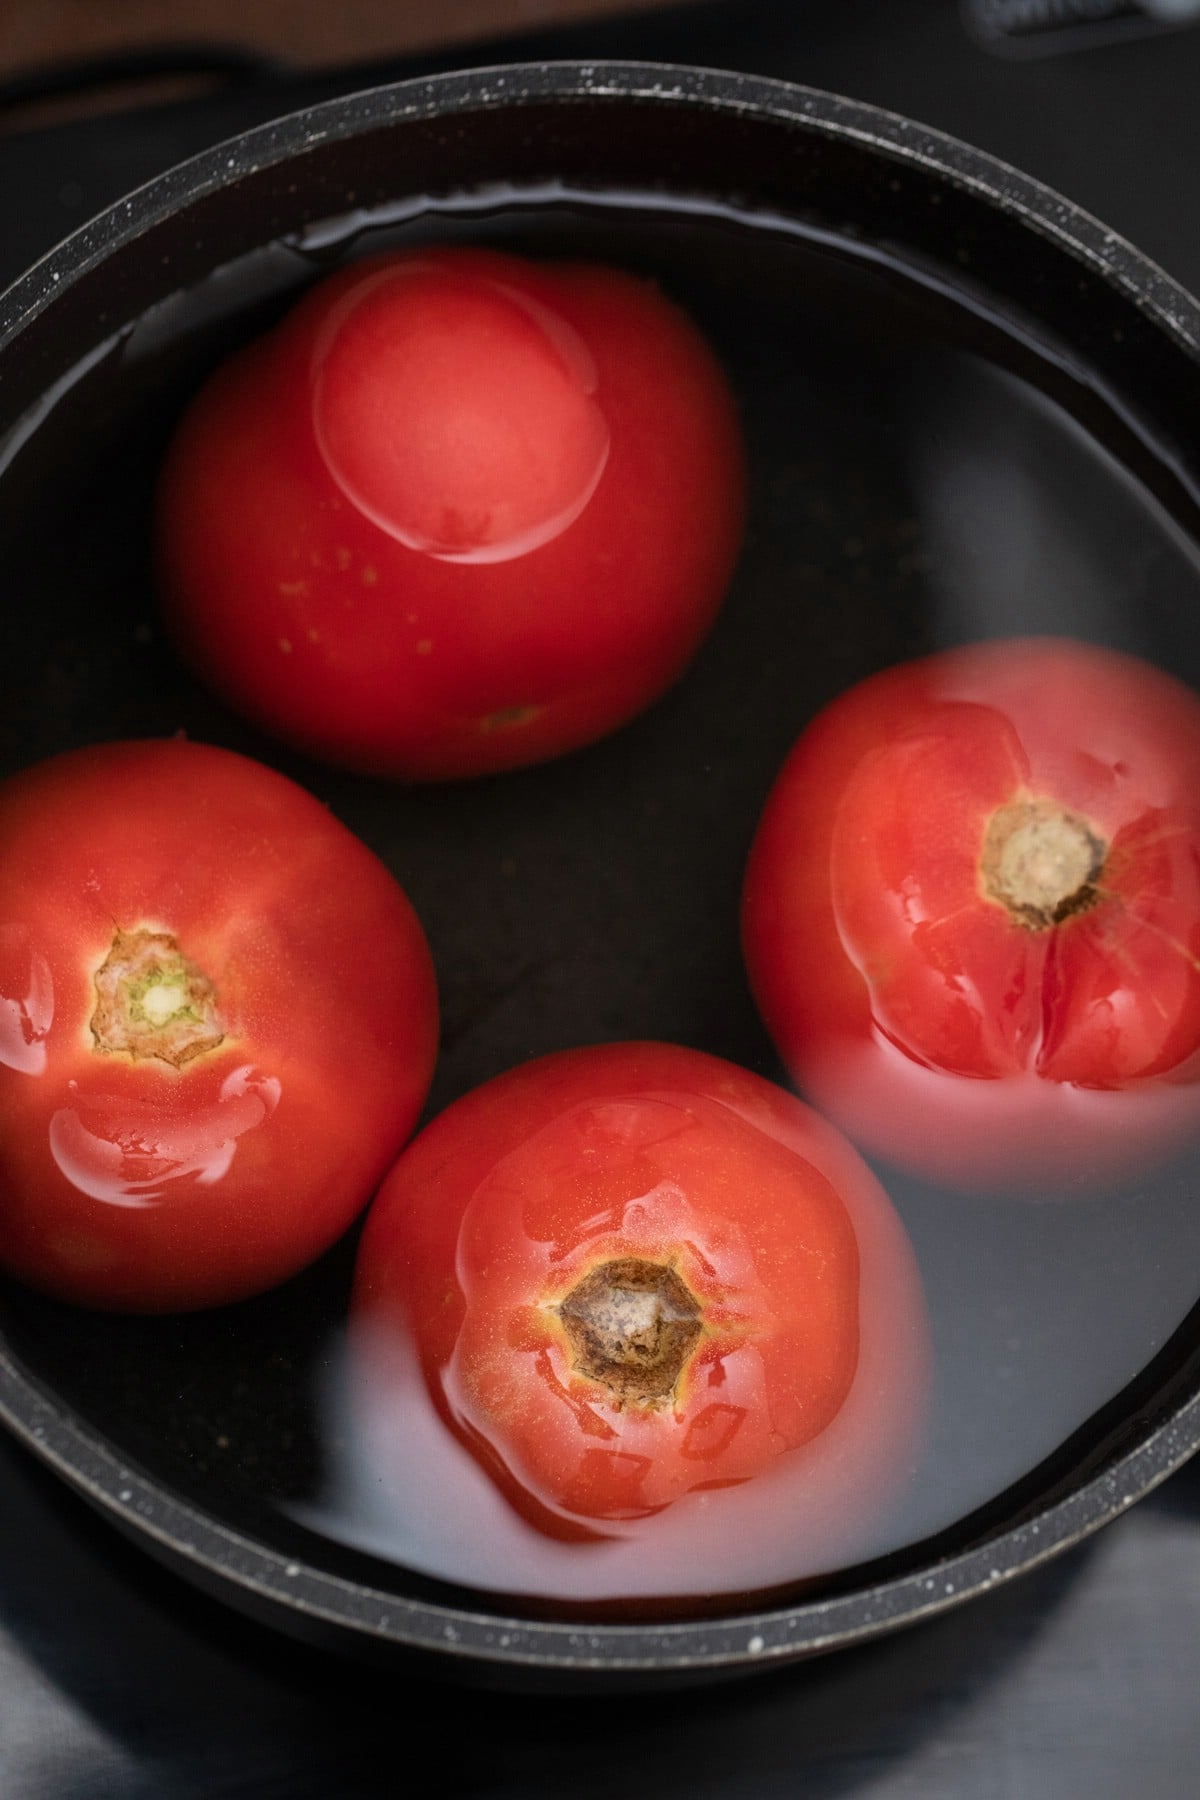 Cooking tomatoes in black stockpot